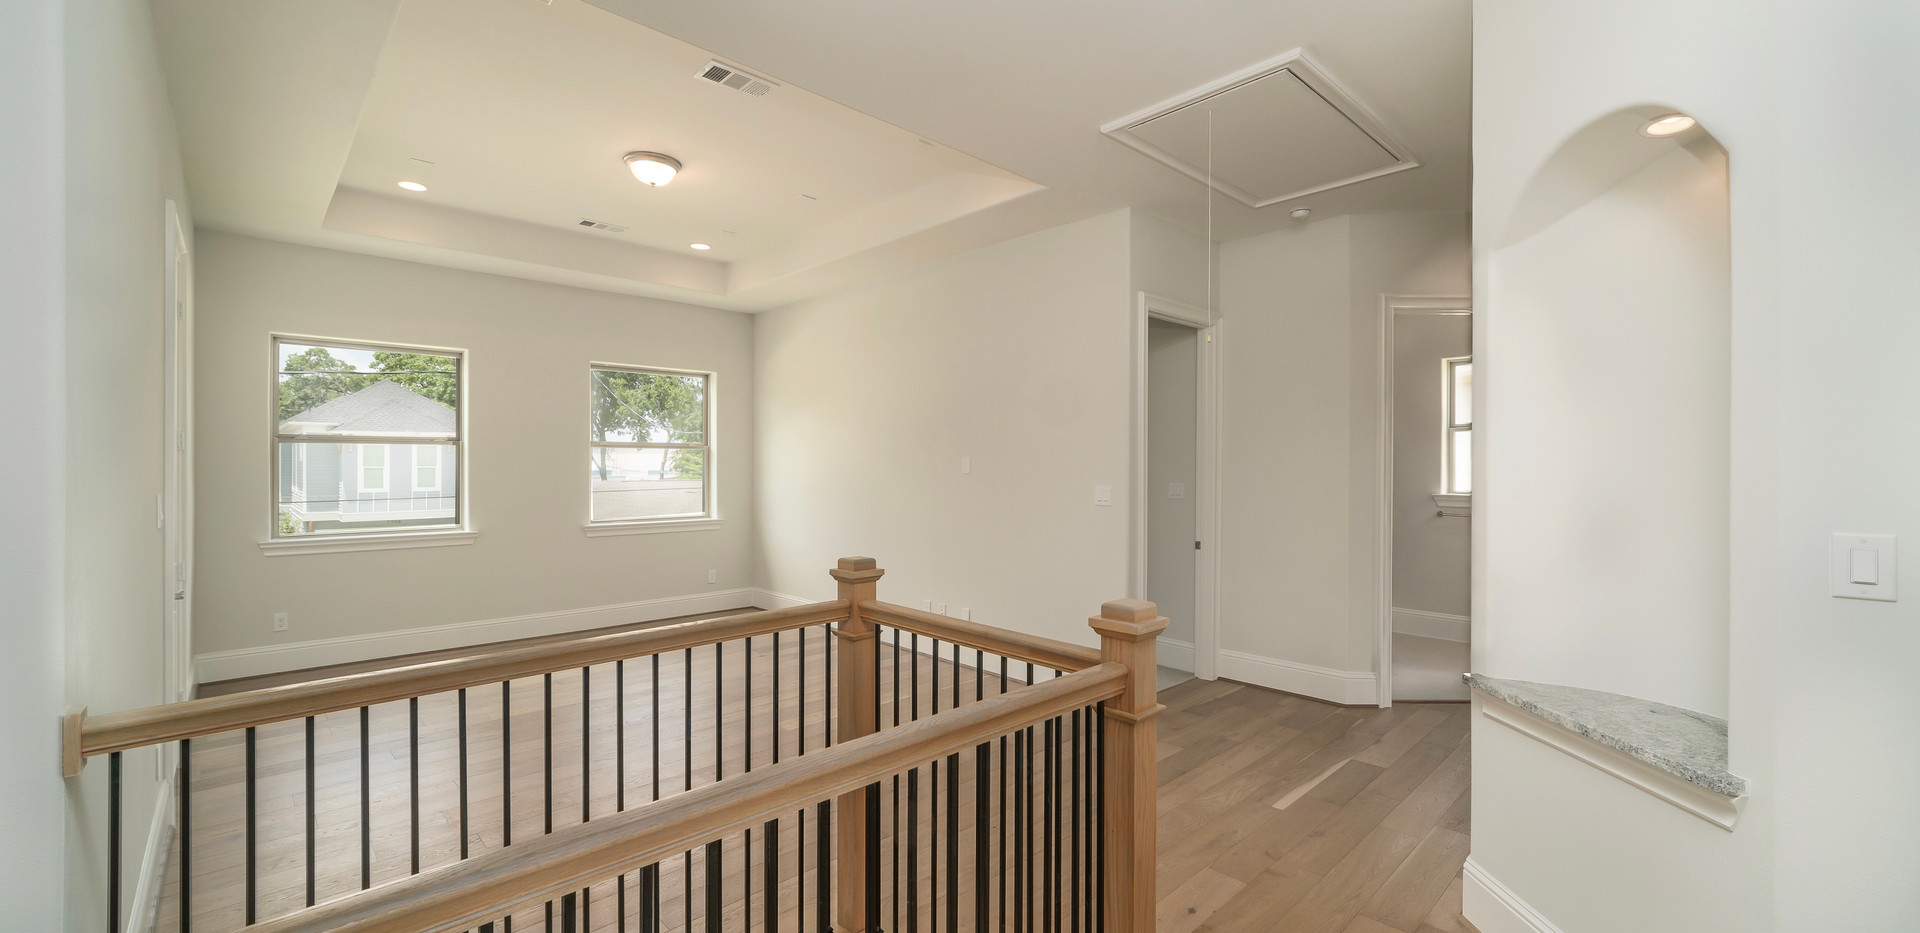 Upstairs View from Stairs.jpg